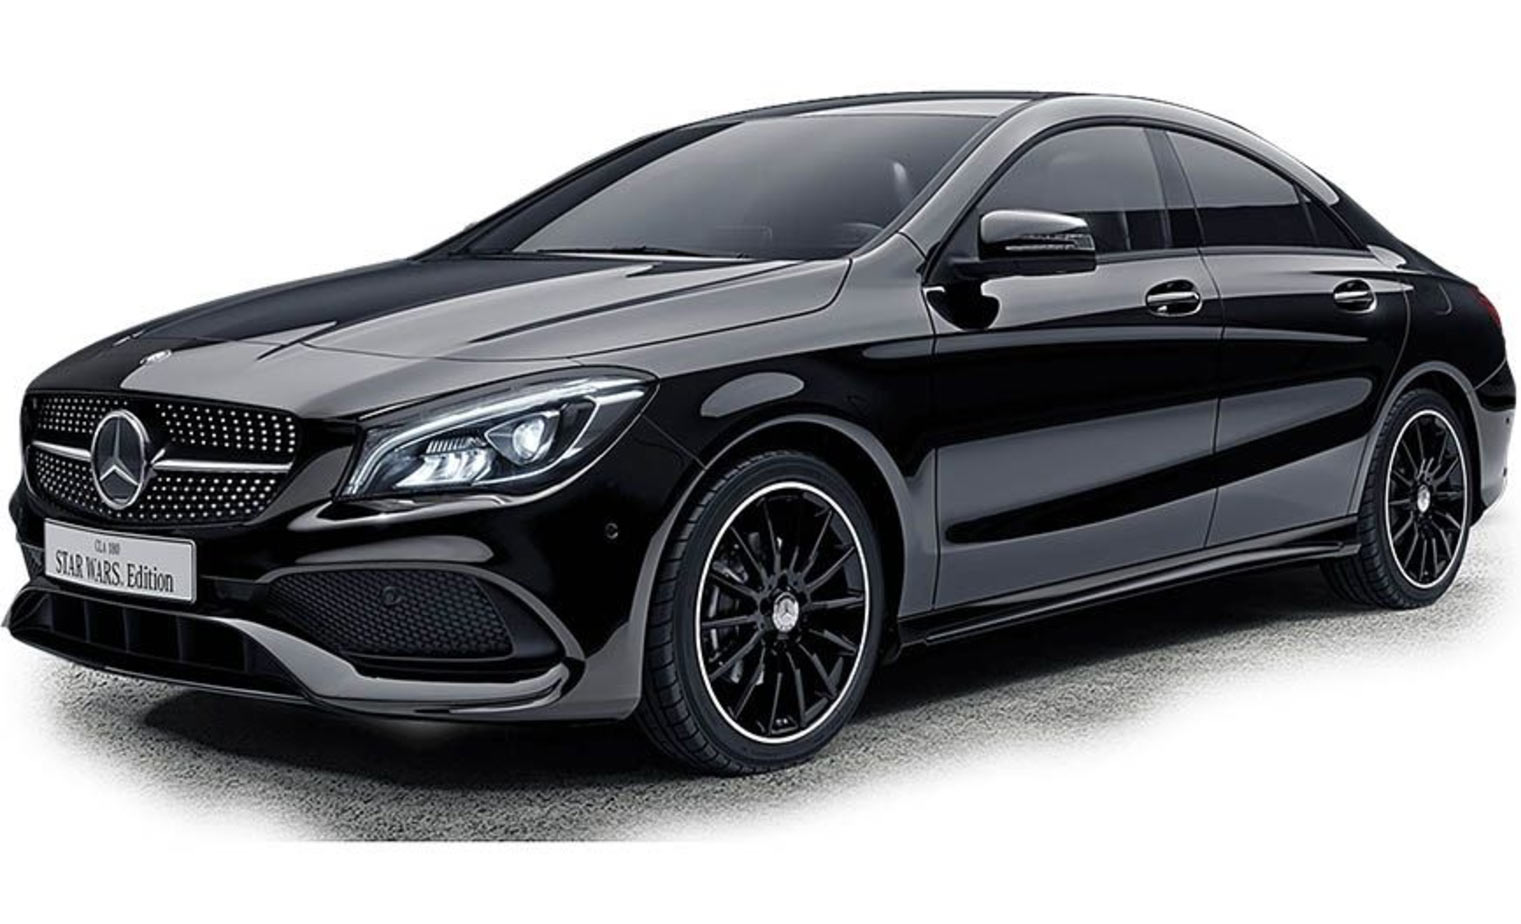 mercedes benz cla 180 class model 2018 in pakistan price. Black Bedroom Furniture Sets. Home Design Ideas